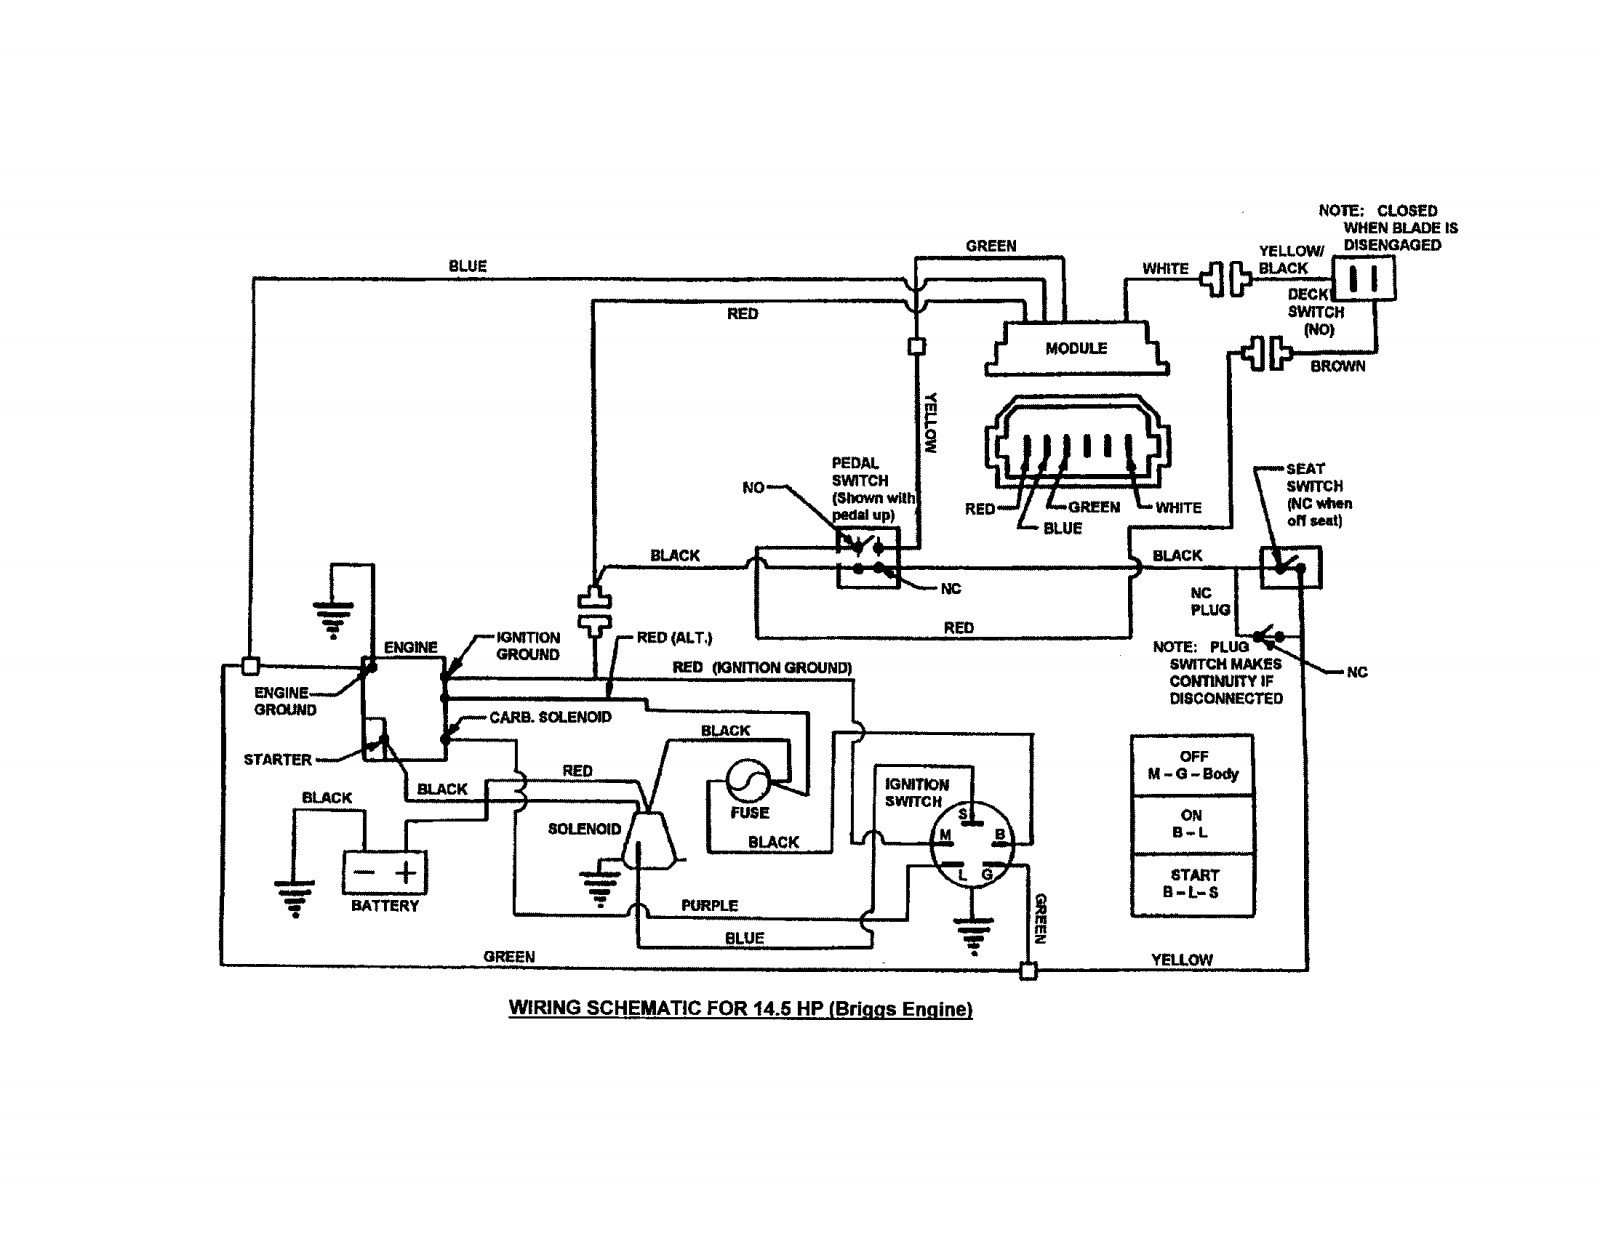 hight resolution of tecumseh engines carburetor diagram briggs and stratton key switch wiring diagram free picture experts of tecumseh related post